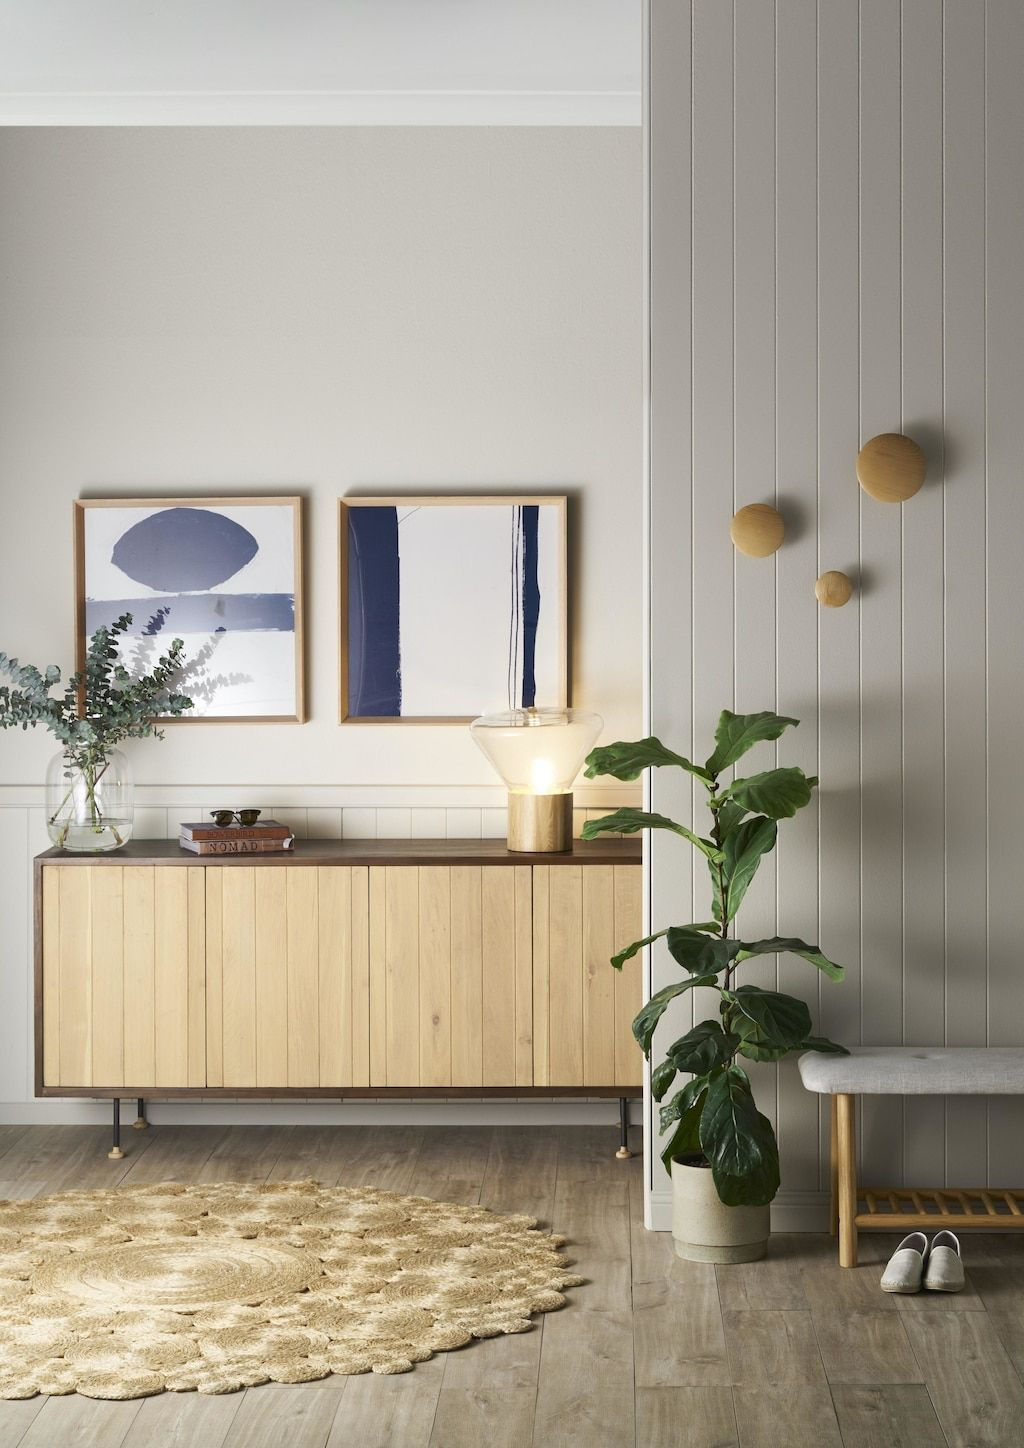 taubmans fossil find and aria ivory two of blaze s favourite neutral shades home in 2019. Black Bedroom Furniture Sets. Home Design Ideas